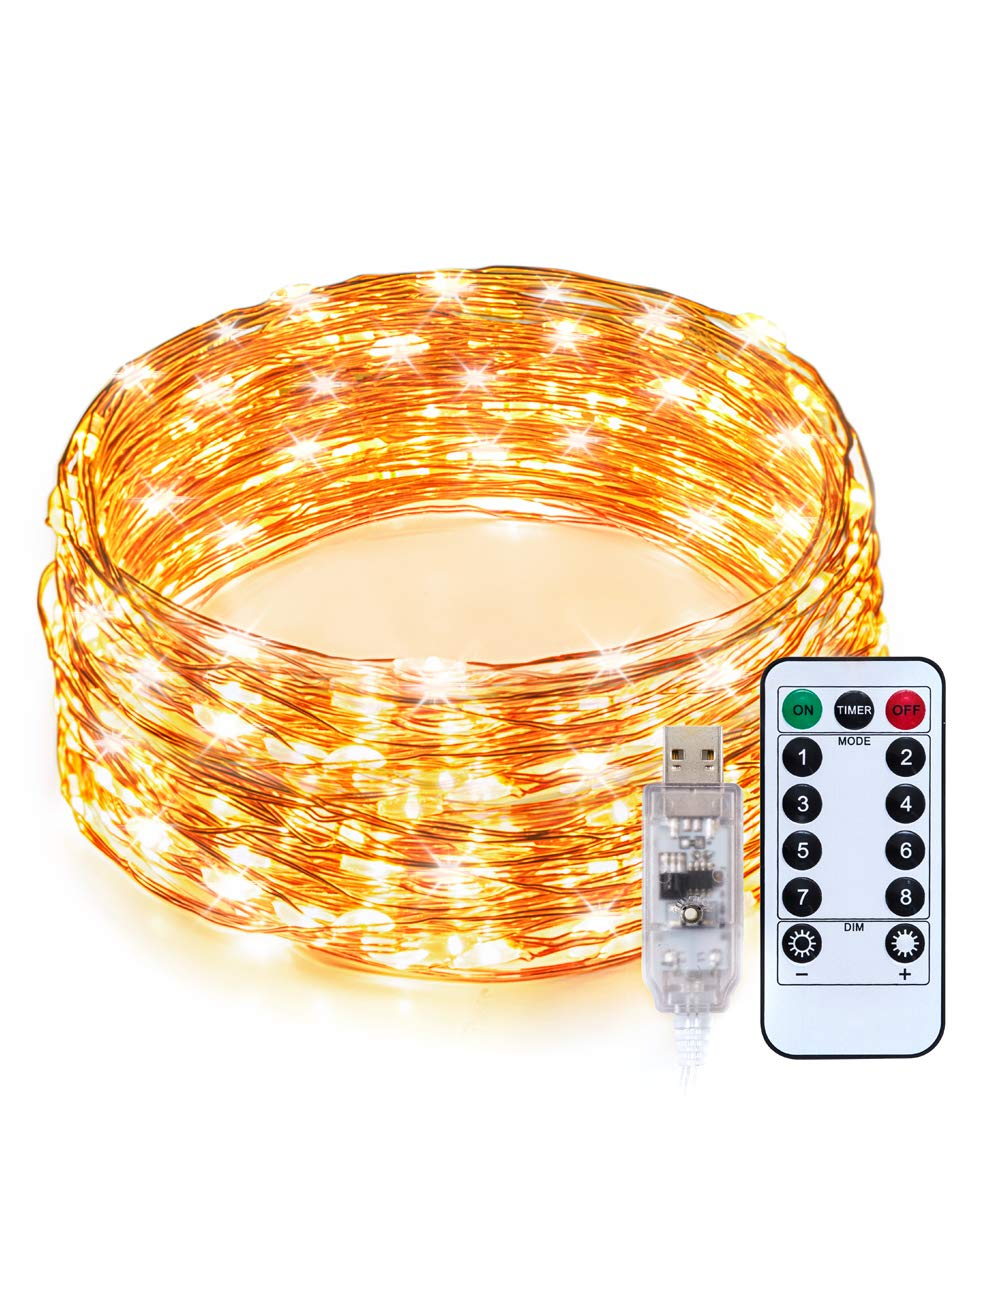 TaoTronics LED String Lights, 33ft 100 LEDs USB Powered Warm White Dimmable Copper Wire String Lights,8 Lighting Modes,15 brightness levels, Remote Control, IP65 Bendable Decorative Lights